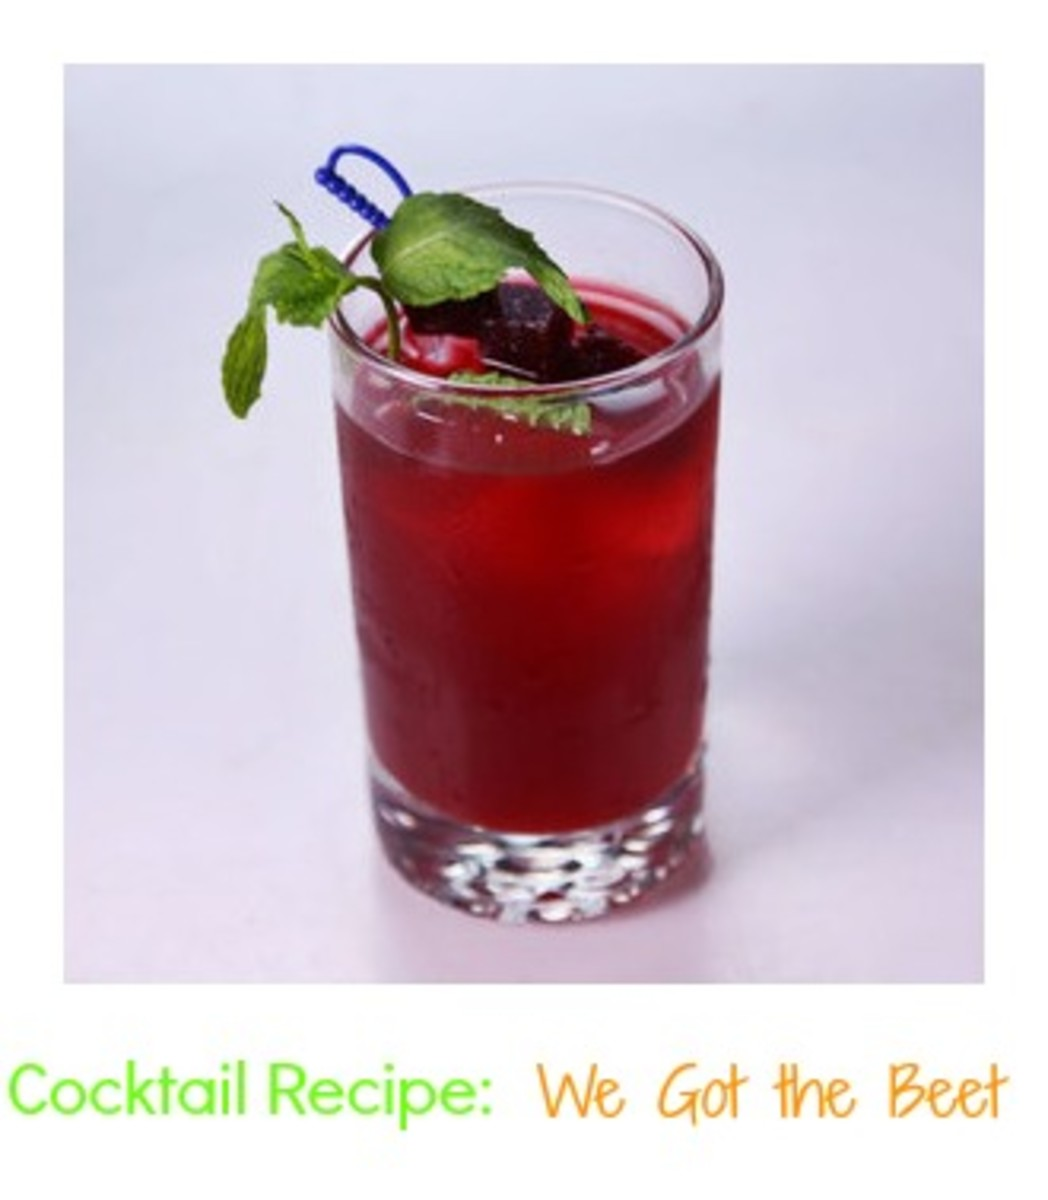 beet cocktail, healthy cocktail, videos, the chew, clinton kelly, beet cocktails, unusual food pairings